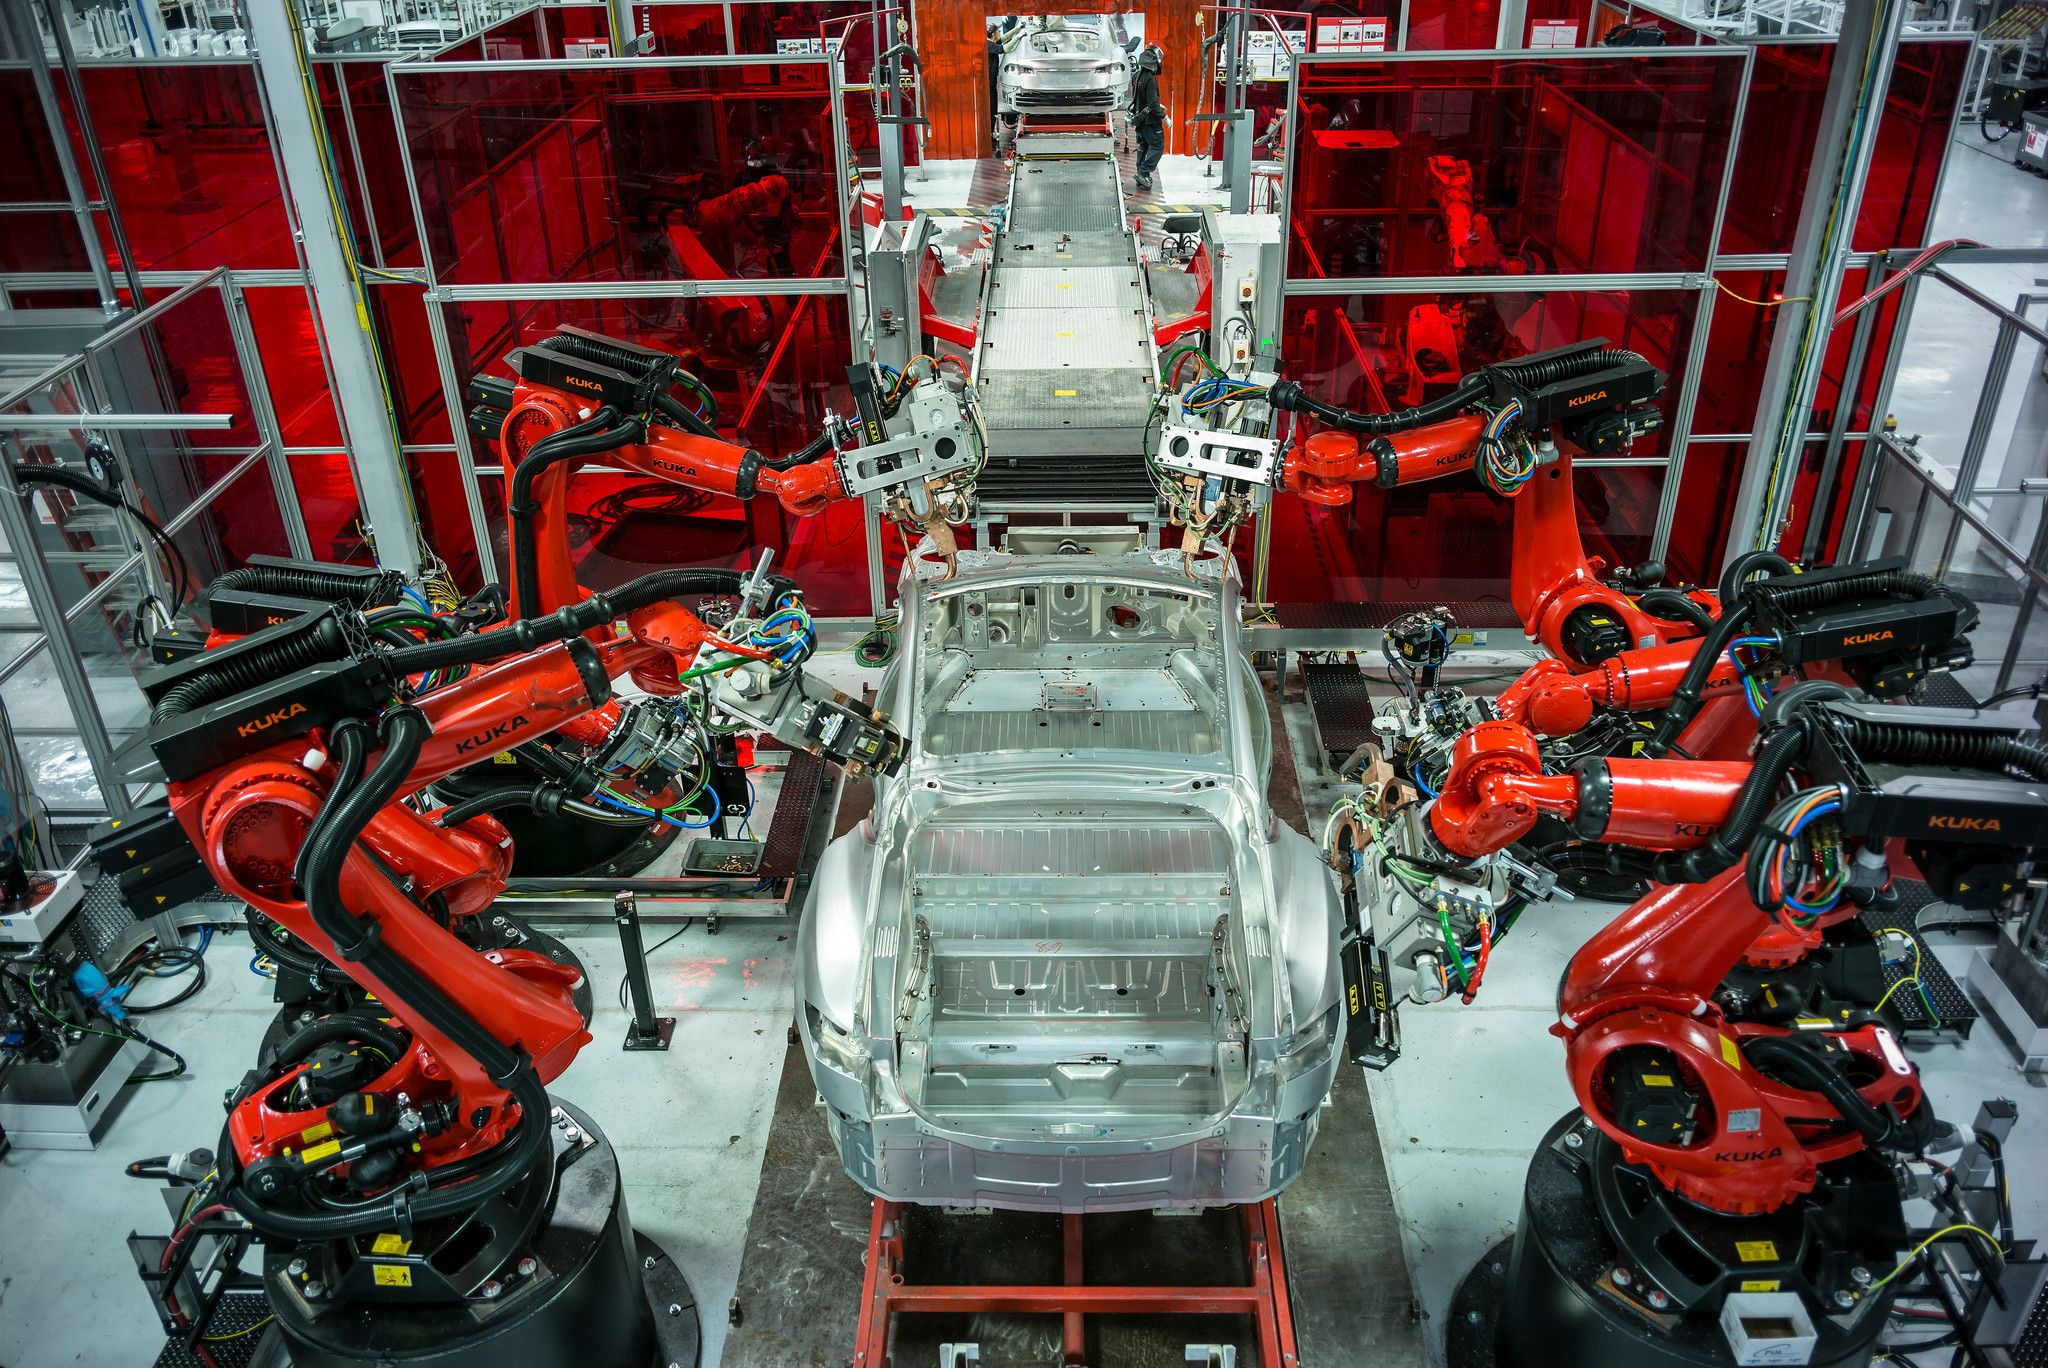 Robots Replacing Human Factory Workers At Faster Pace With Images